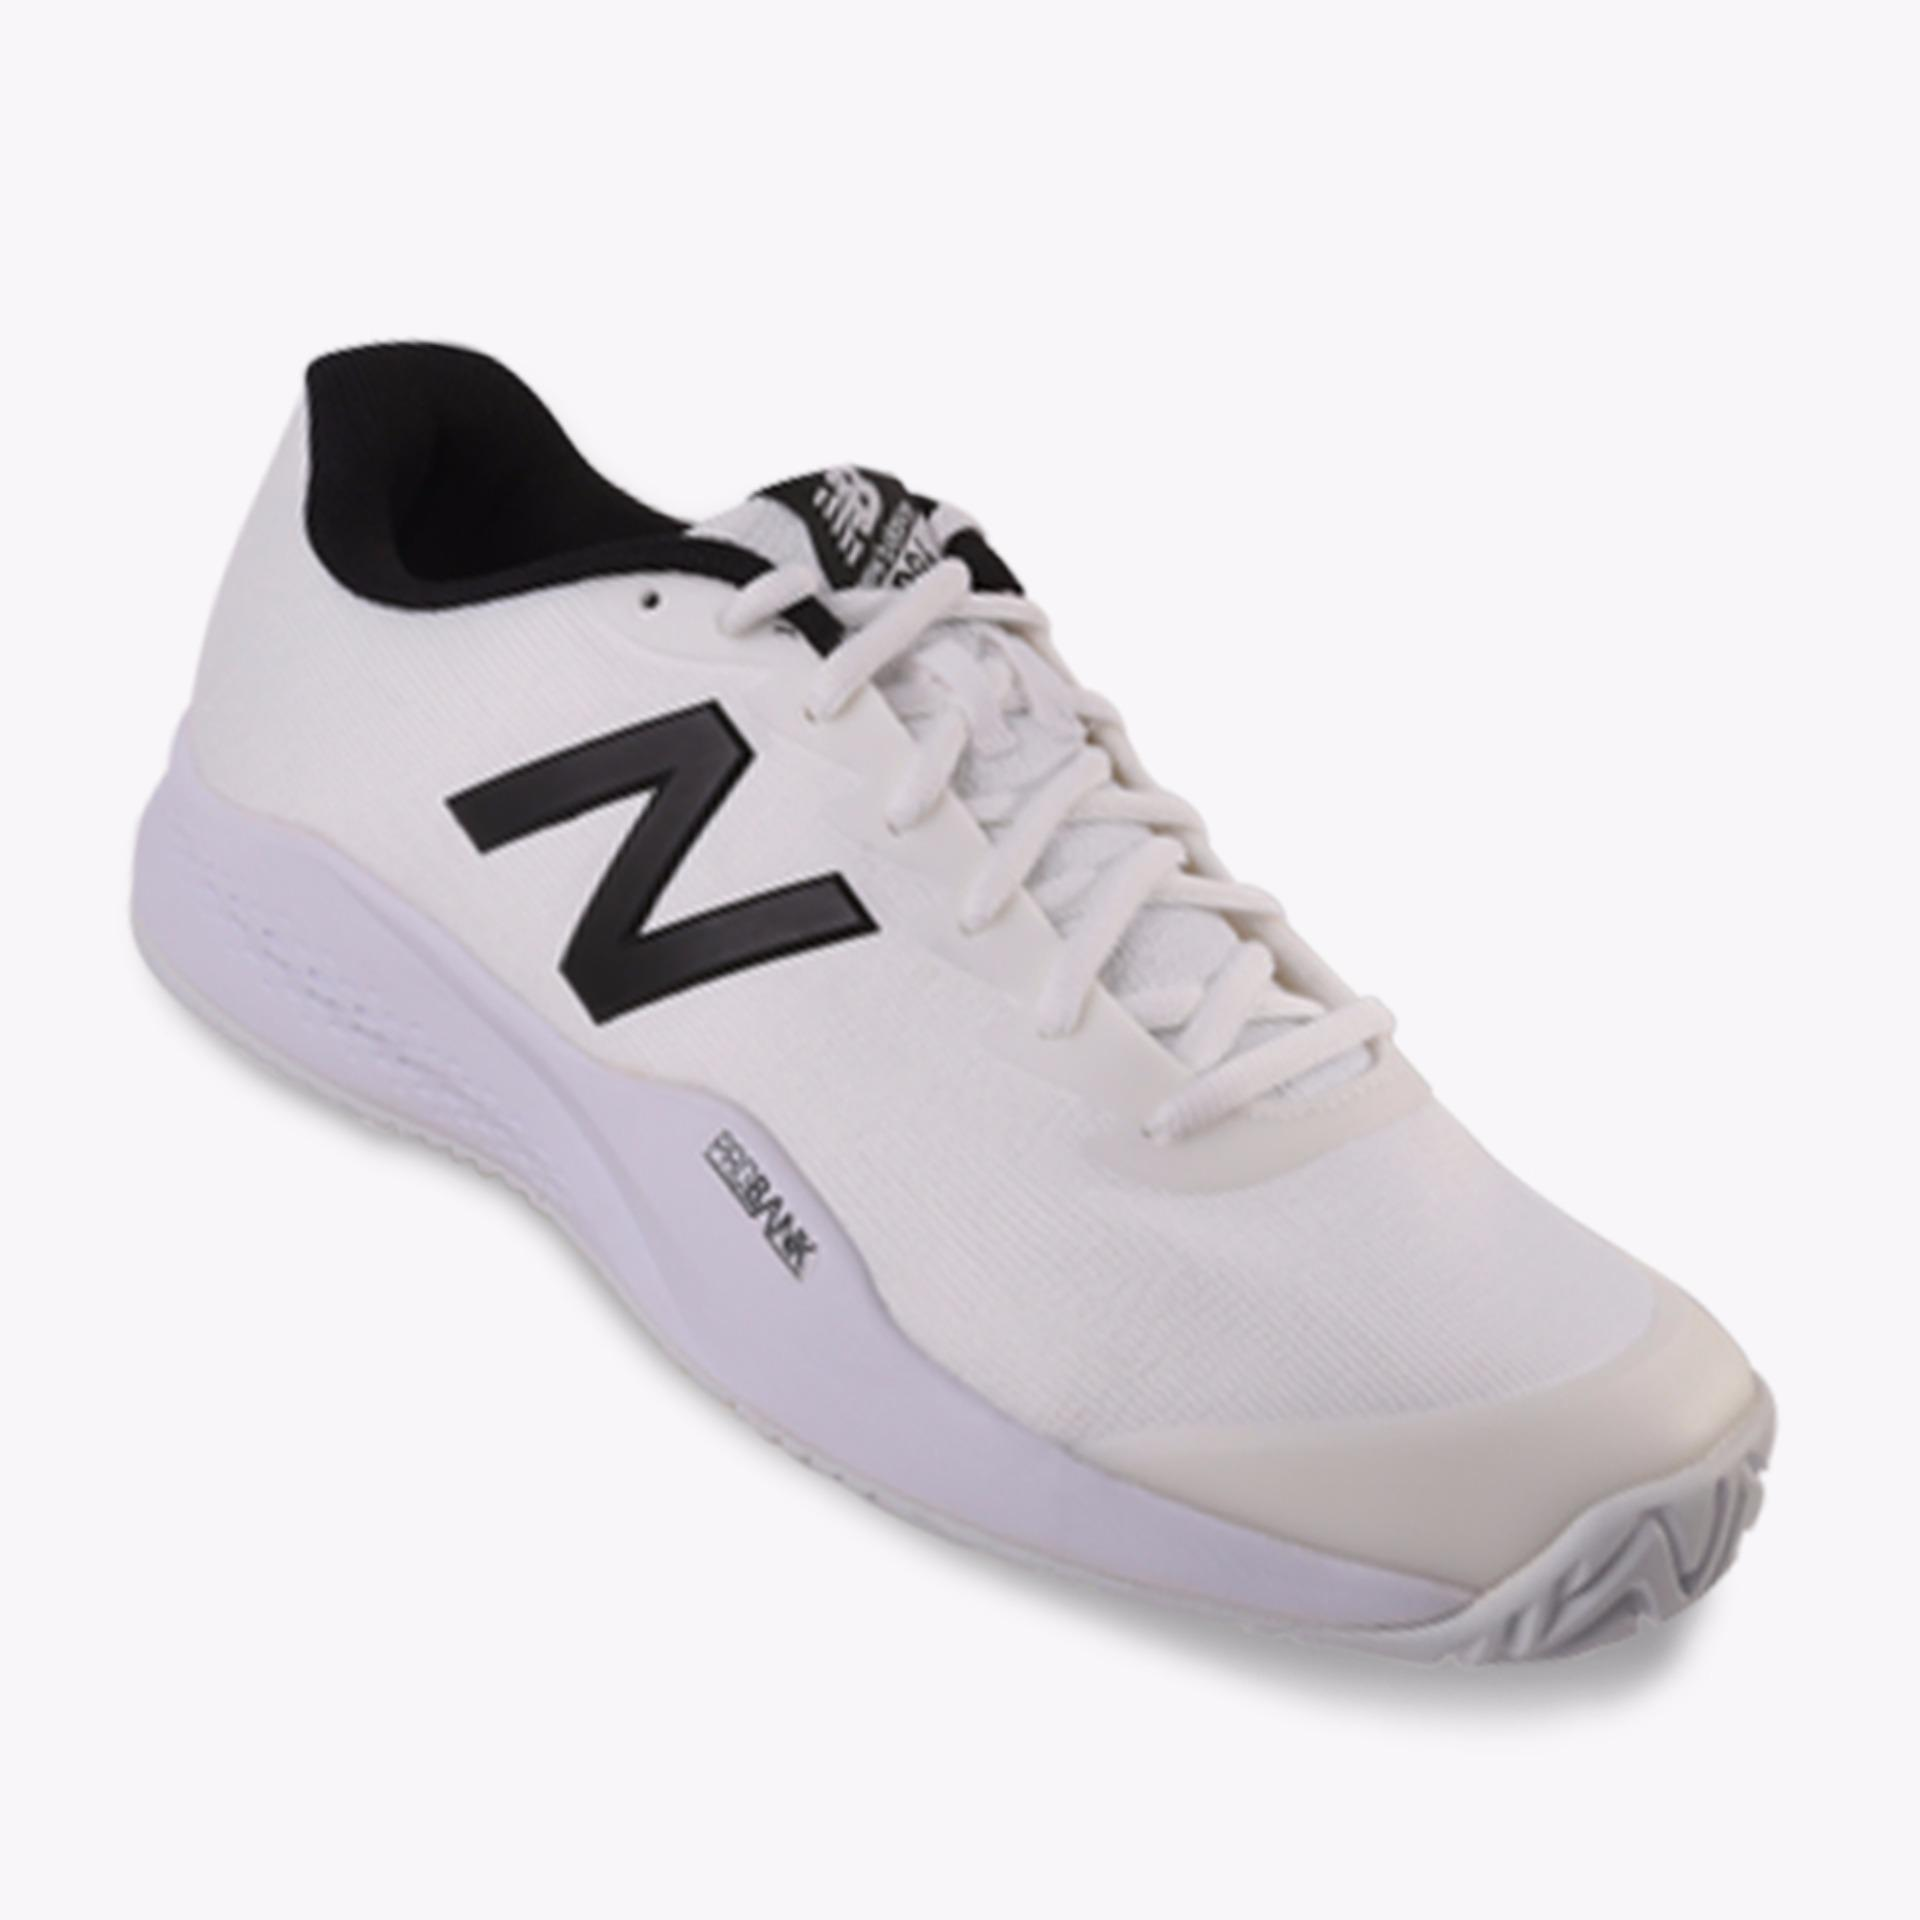 Beli New Balance 996V3 Men S Tennis Shoes Putih Yang Bagus